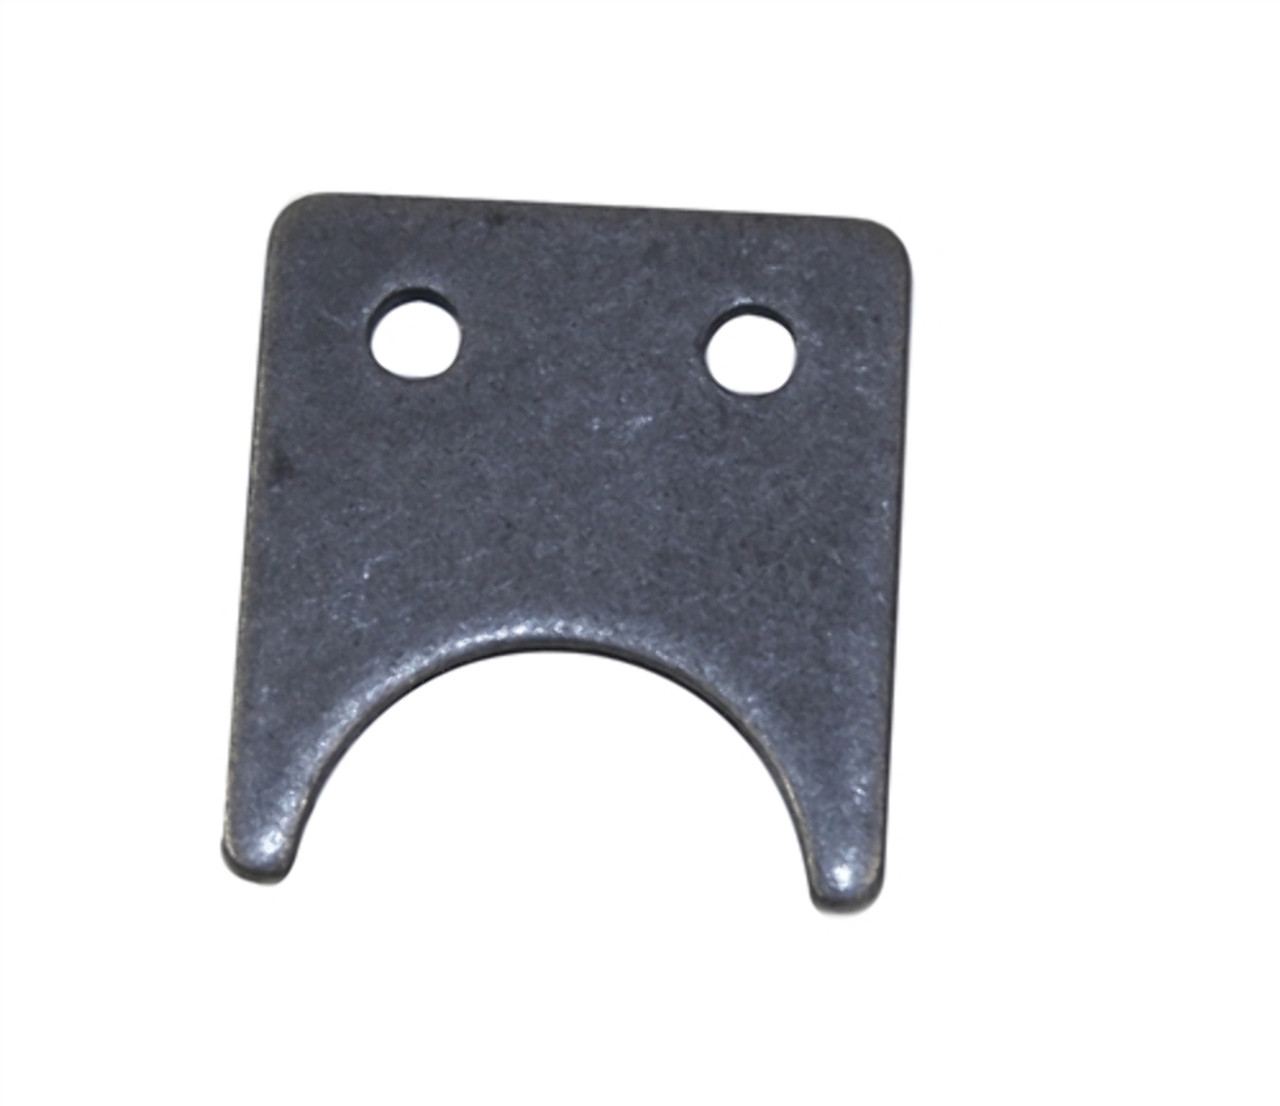 17-2575-0 MOUNT TAB FOR S/S CLAMP